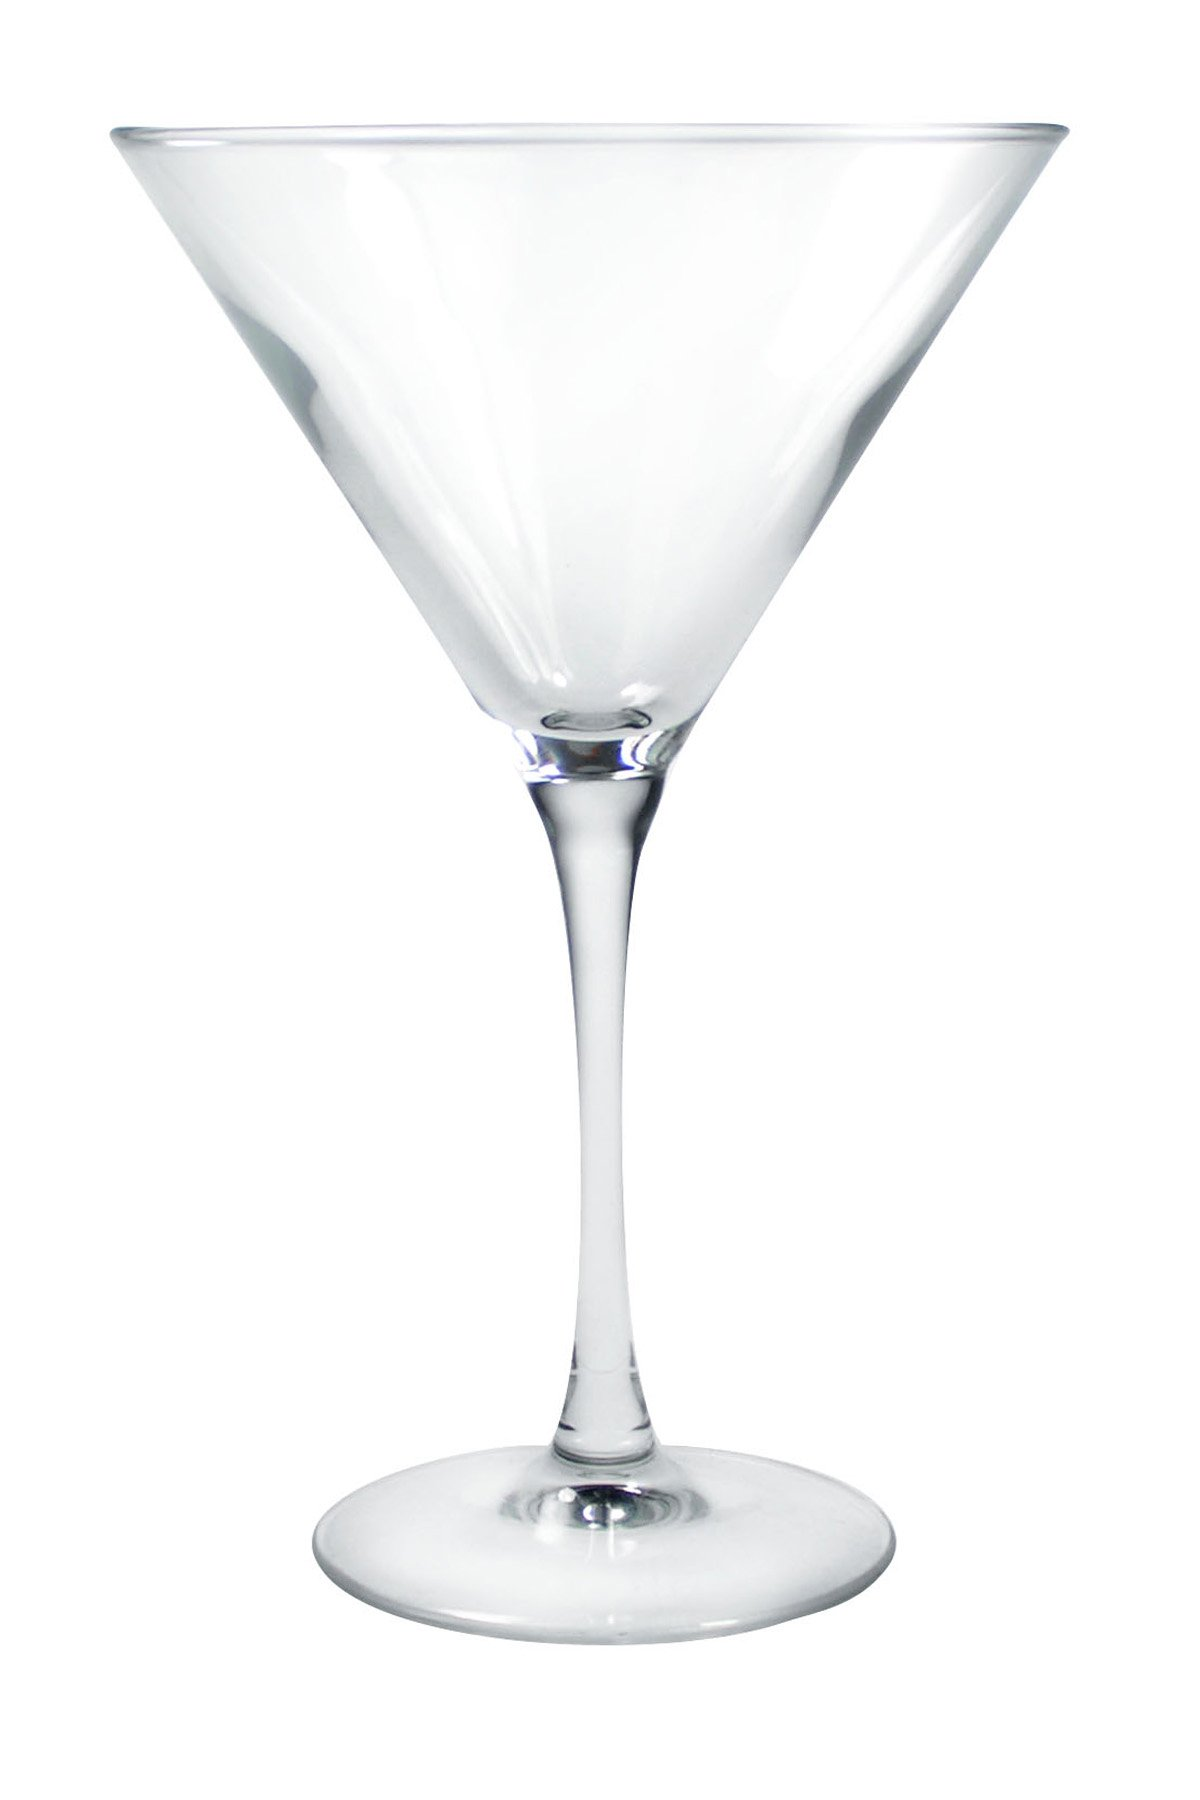 Arc International Luminarc Cachet Martini Glass, 10-Ounce, Set of 12